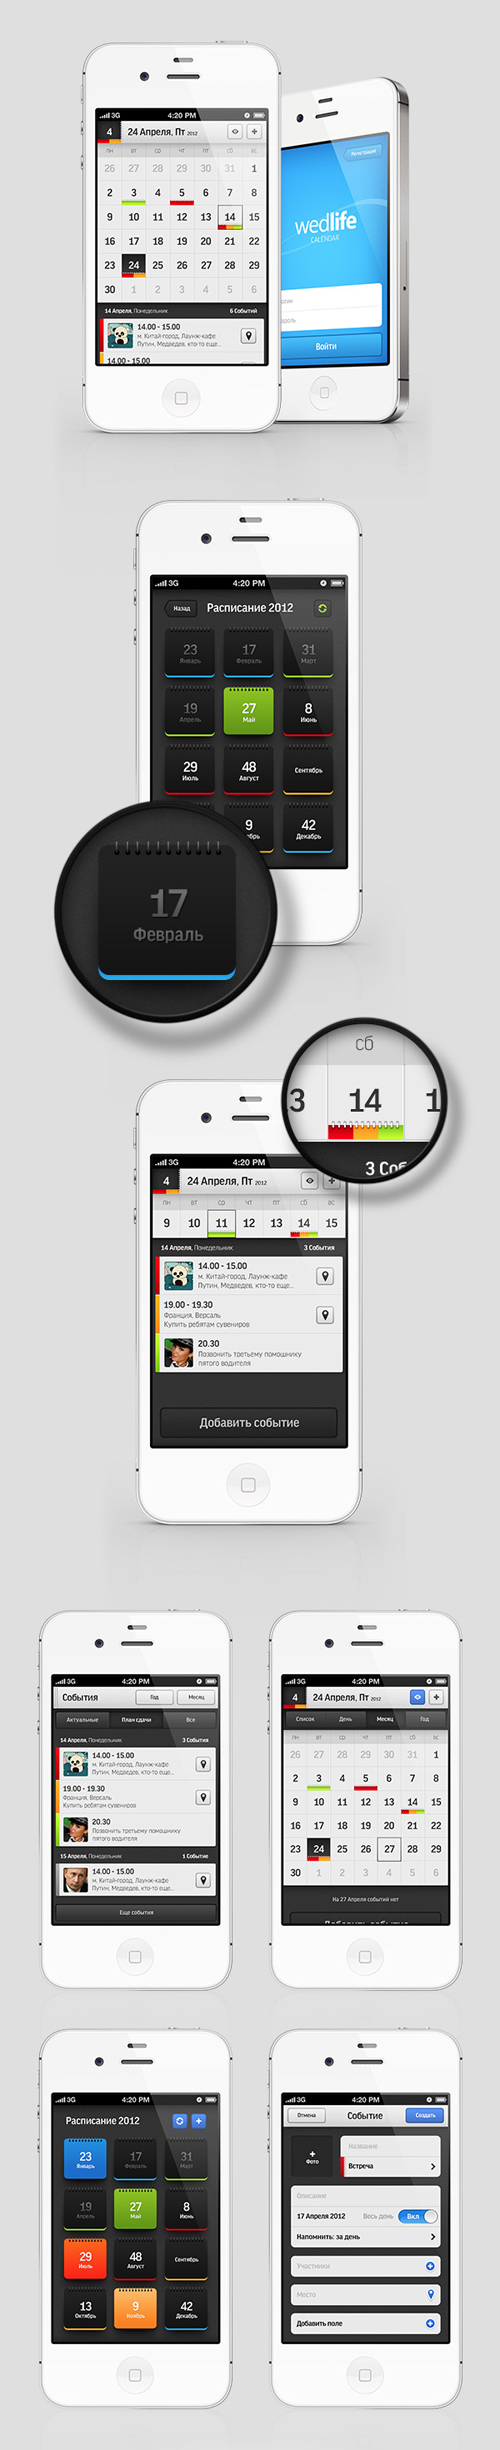 Mobile Apps Design with UI/UX-34